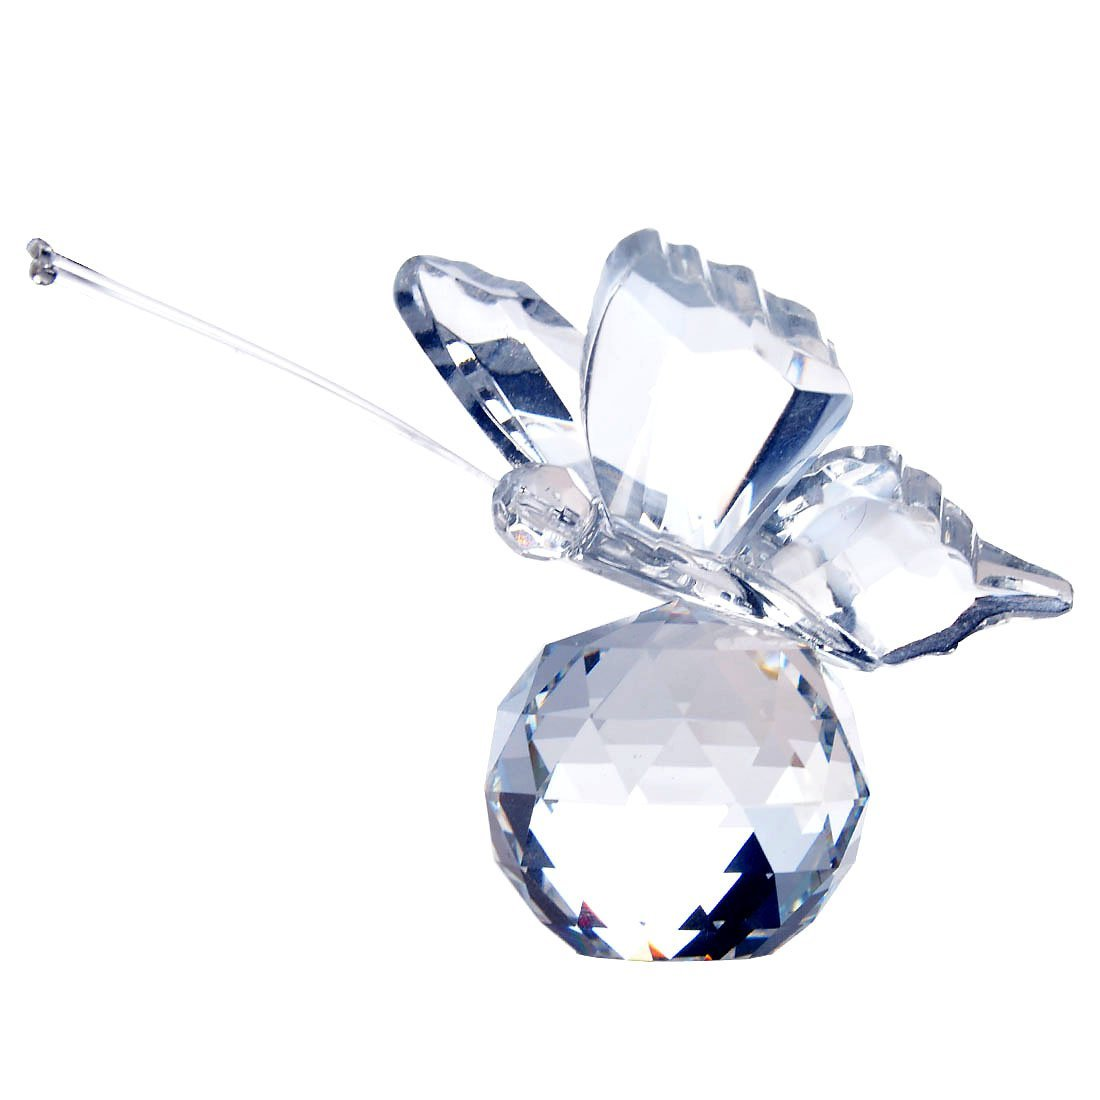 YUFENG Cute Crystal Flying Butterfly with Crystal Ball Base Figurine Collection Cut Glass Ornament Statue Animal Collectible (clear)